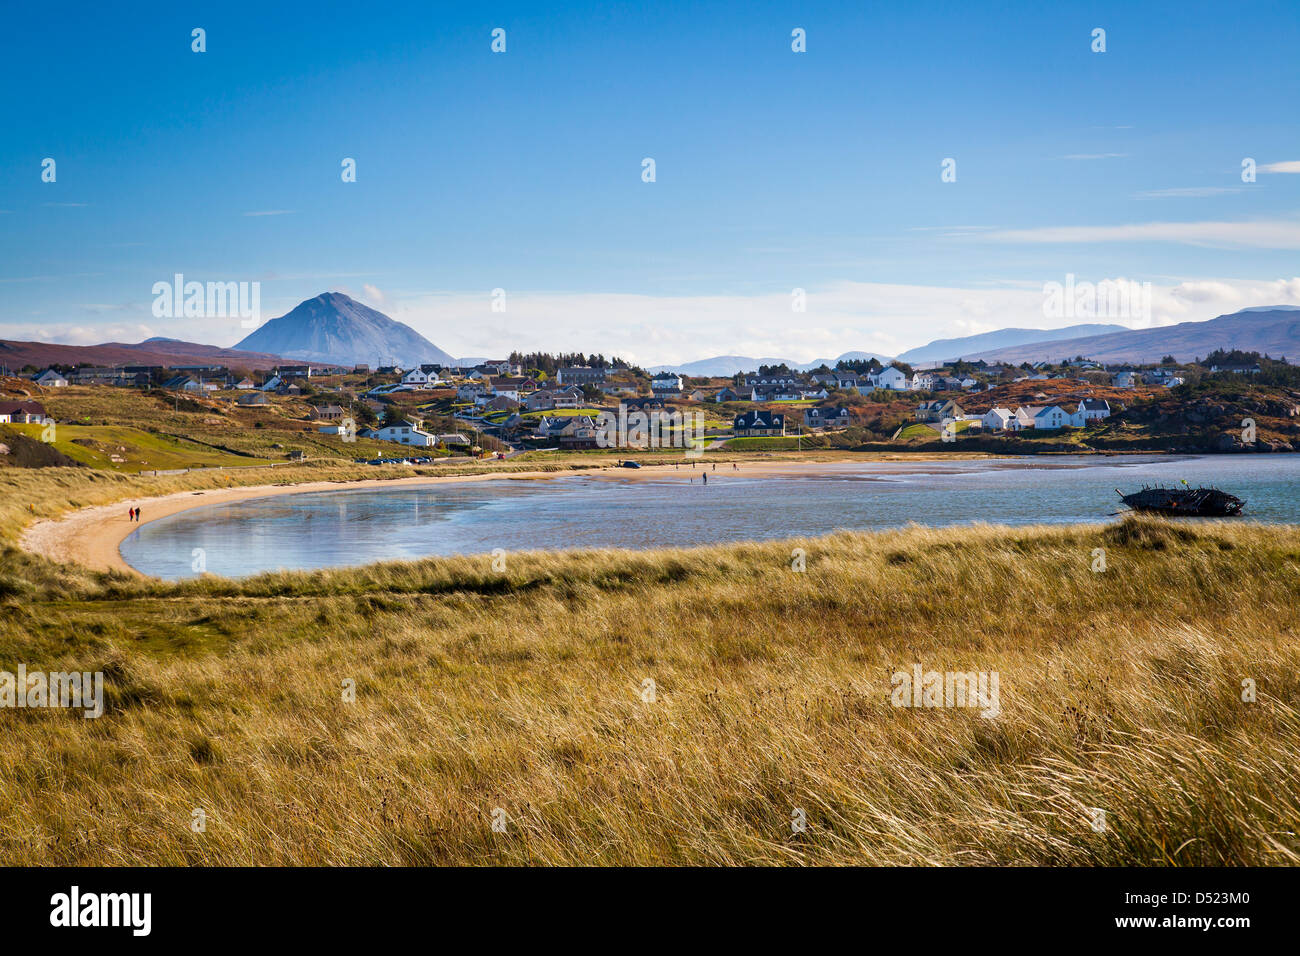 Village of Bunbeg with Mount Errigal in the distance, Donegal, Ireland. - Stock Image